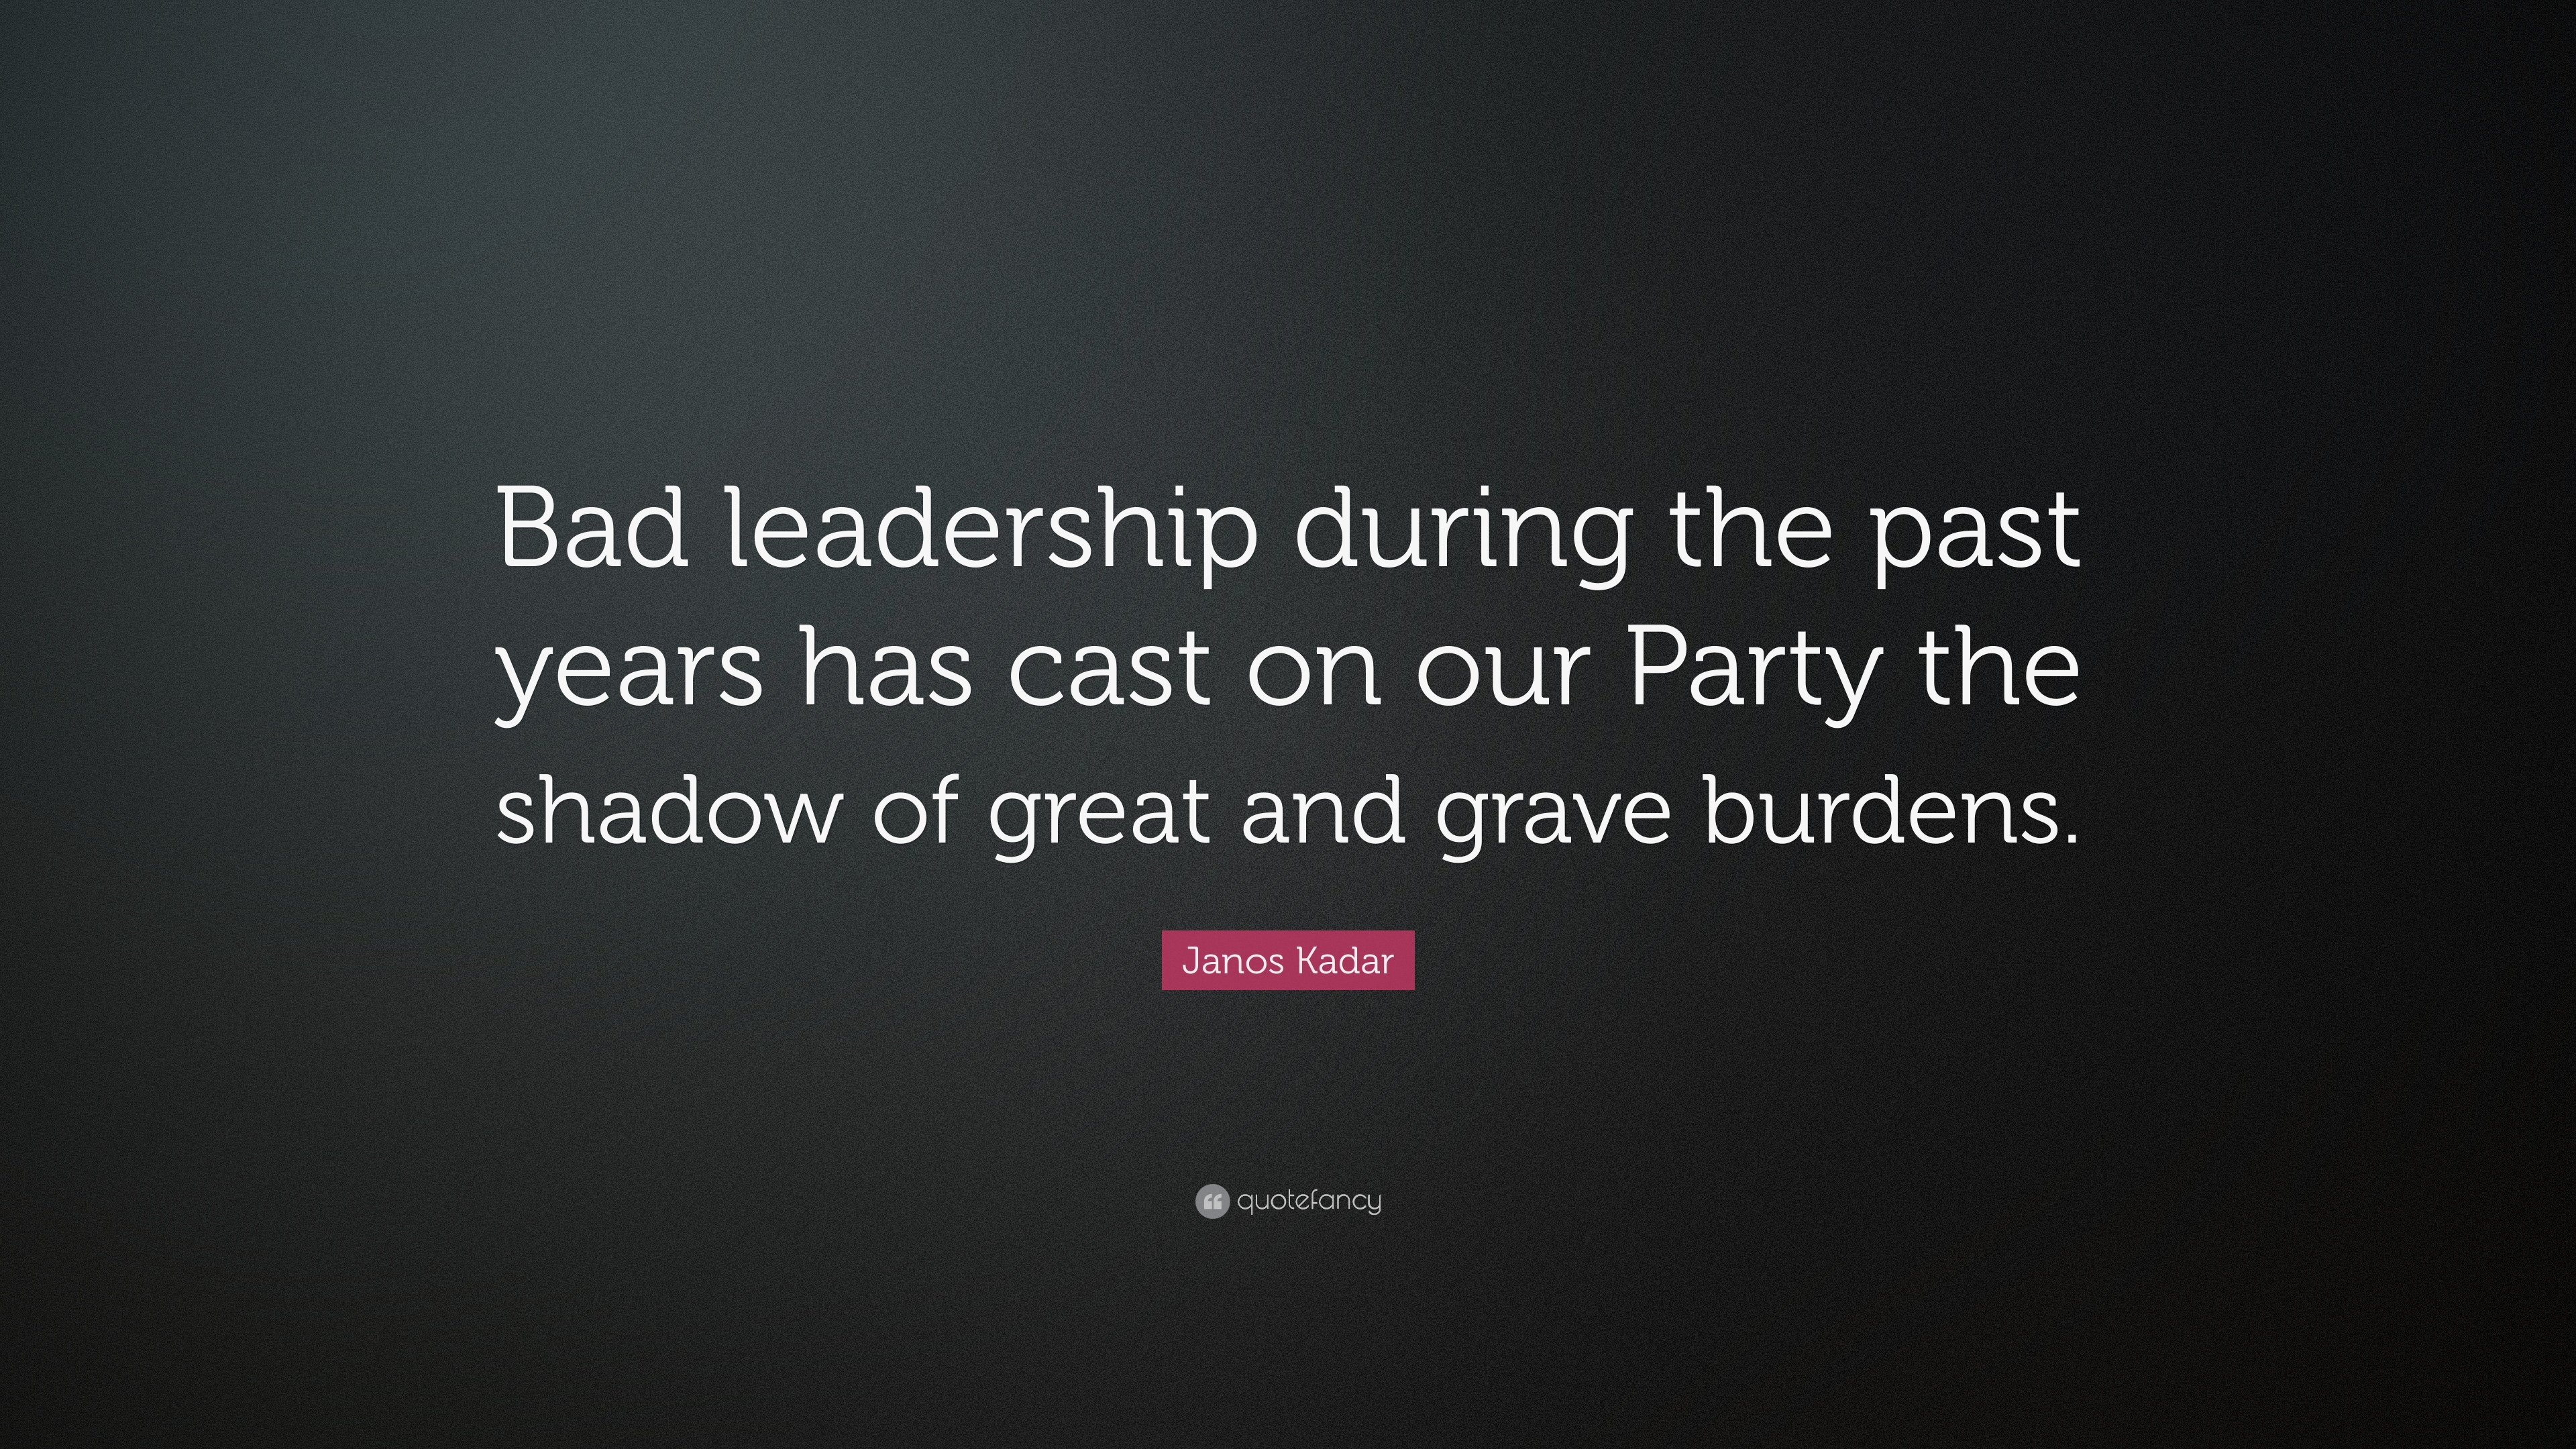 Bad Leadership Quotes Janos Kadar Quotes 5 Wallpapers  Quotefancy